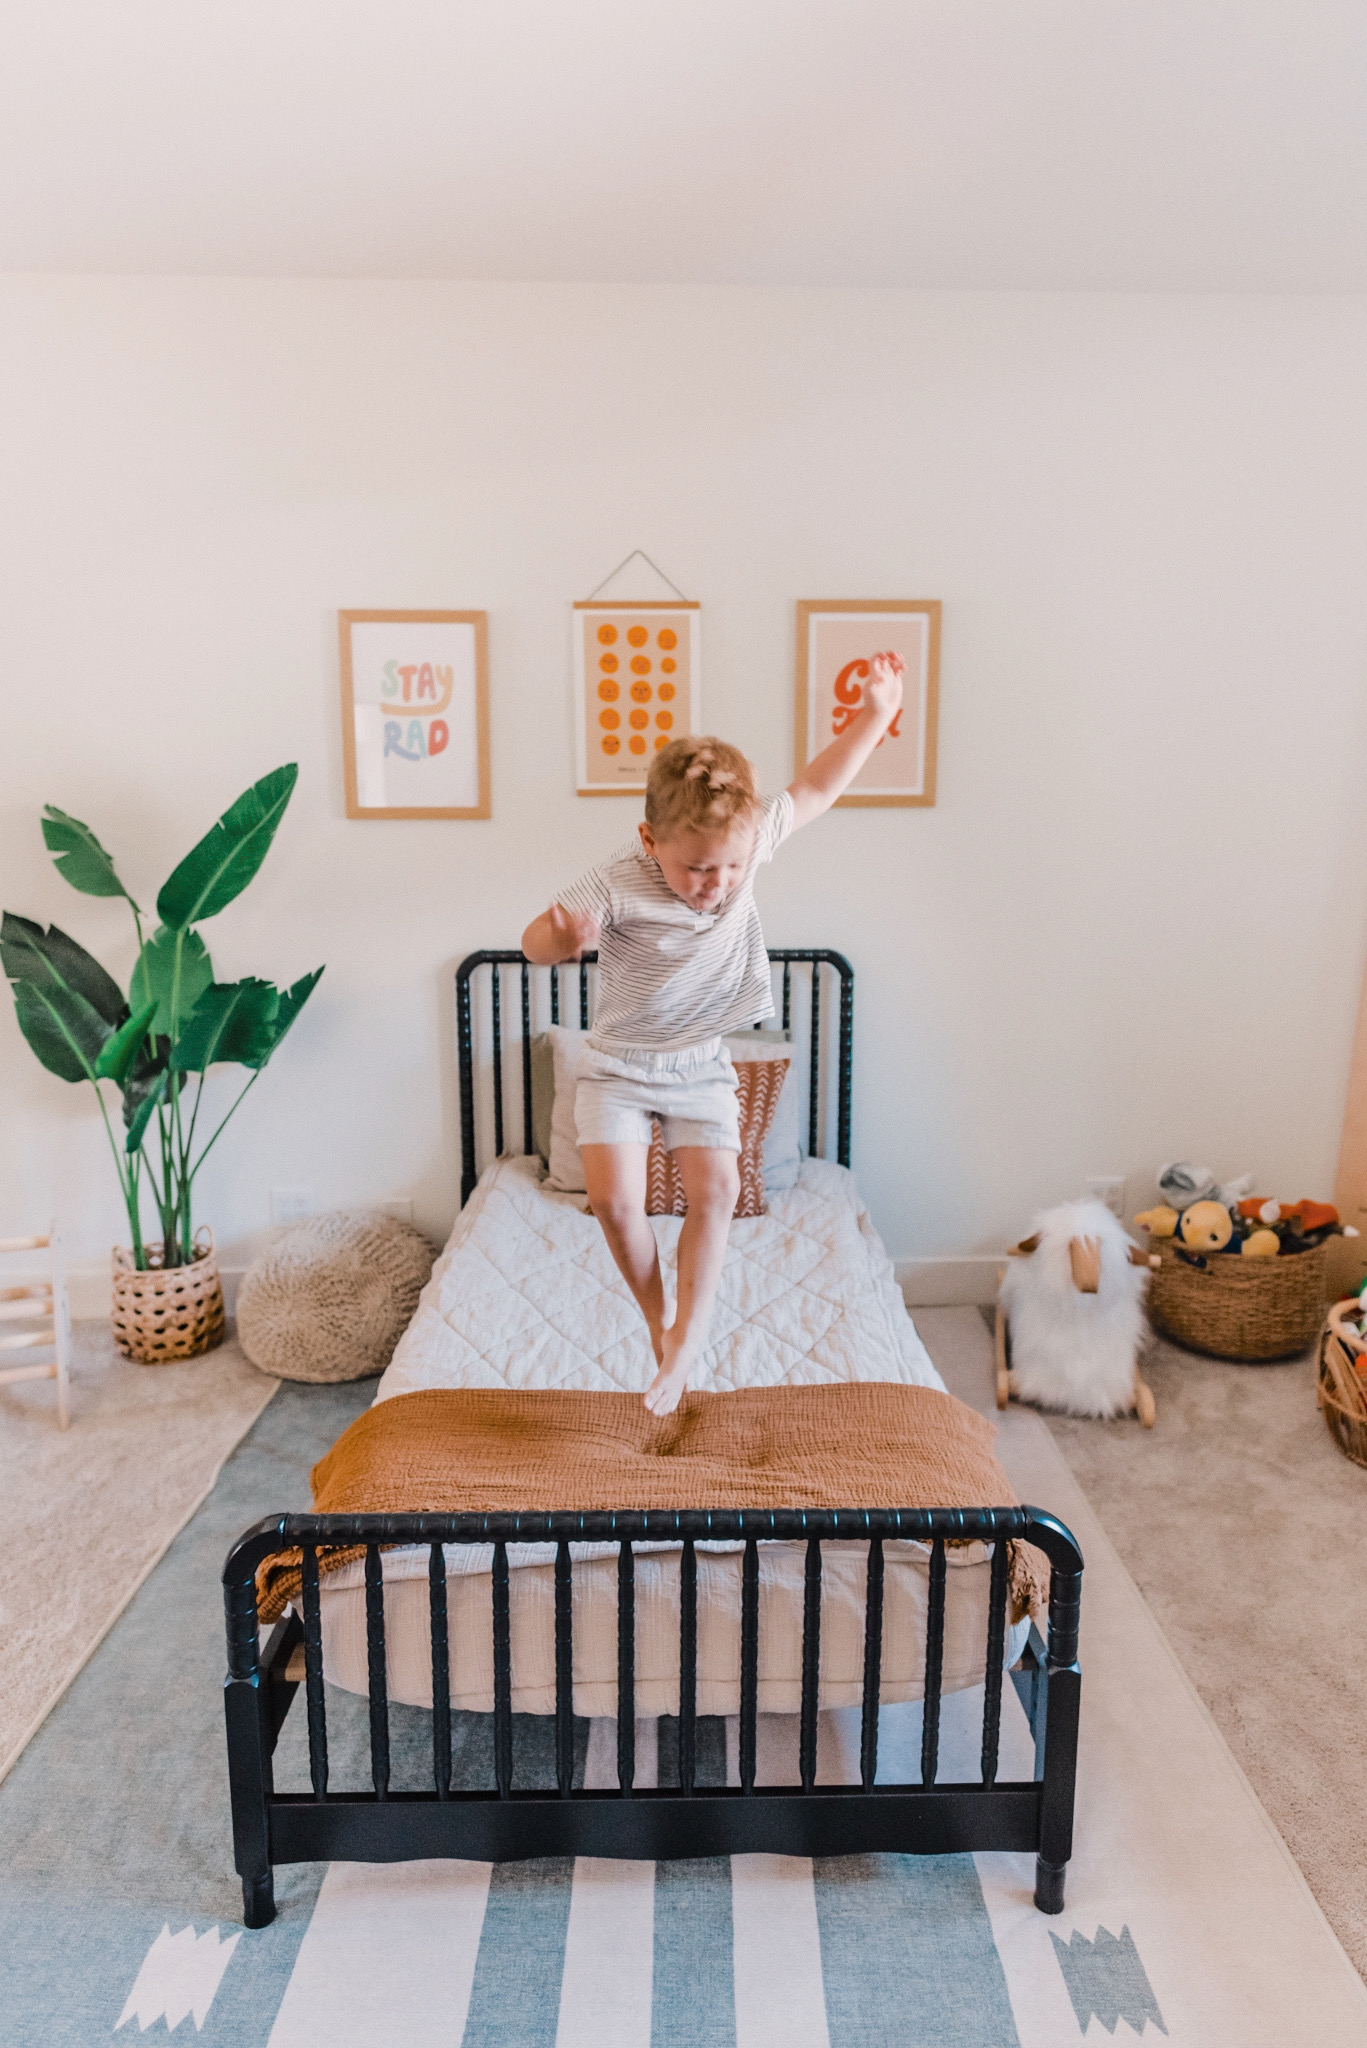 Barn and Willow by popular San Diego life and style blog, Navy Grace: image of a boy jumping on a bed in a bedroom decorated with Barn and Willow drapery, Wayfair Jenny Lind Twin Platform Bed, Ruggable Domo Sage Rug, Urban Outfitters Rhianna Marie Chan Cool To Be Kind Art Print, Urban Outfitters  Hover to zoom.  Hiller Goodspeed Faces I Know Art Print, Urban Outfitters Phirst Stay Rad Colors Art Print, H&M Cotton Throw, and Amazon One 5 foot Artificial Silk Bird of Paradise Palm Tree Potted Plant.